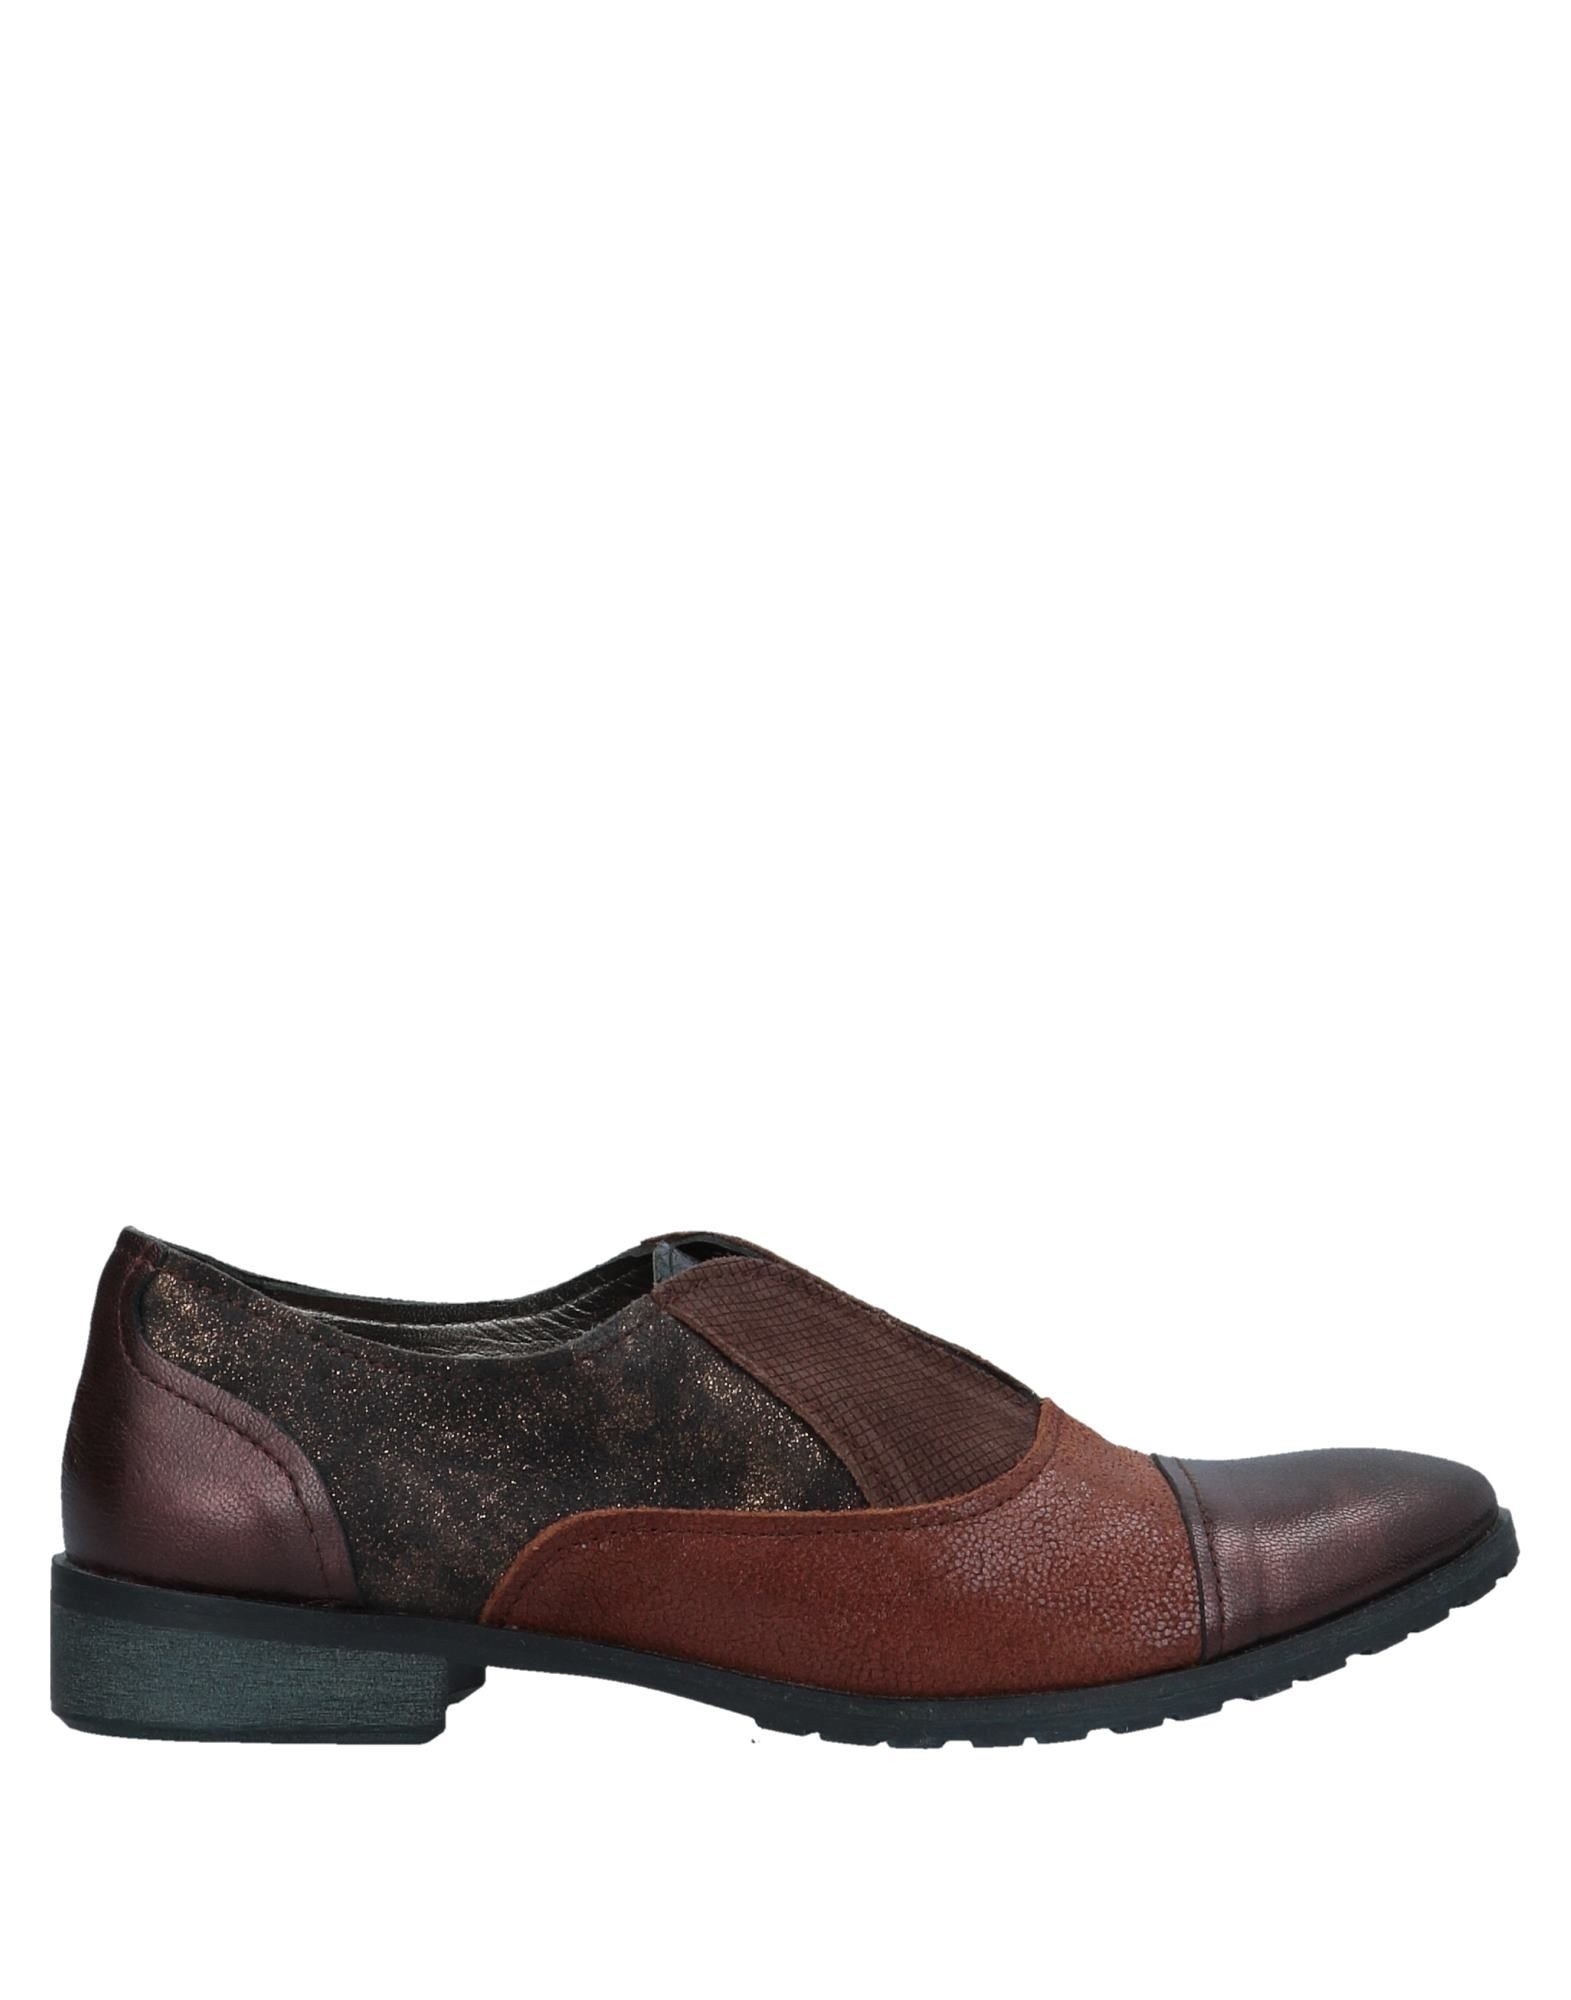 Ebarrito Loafers  - Women Ebarrito Loafers online on  Loafers Australia - 11554979VV 0d6bf1